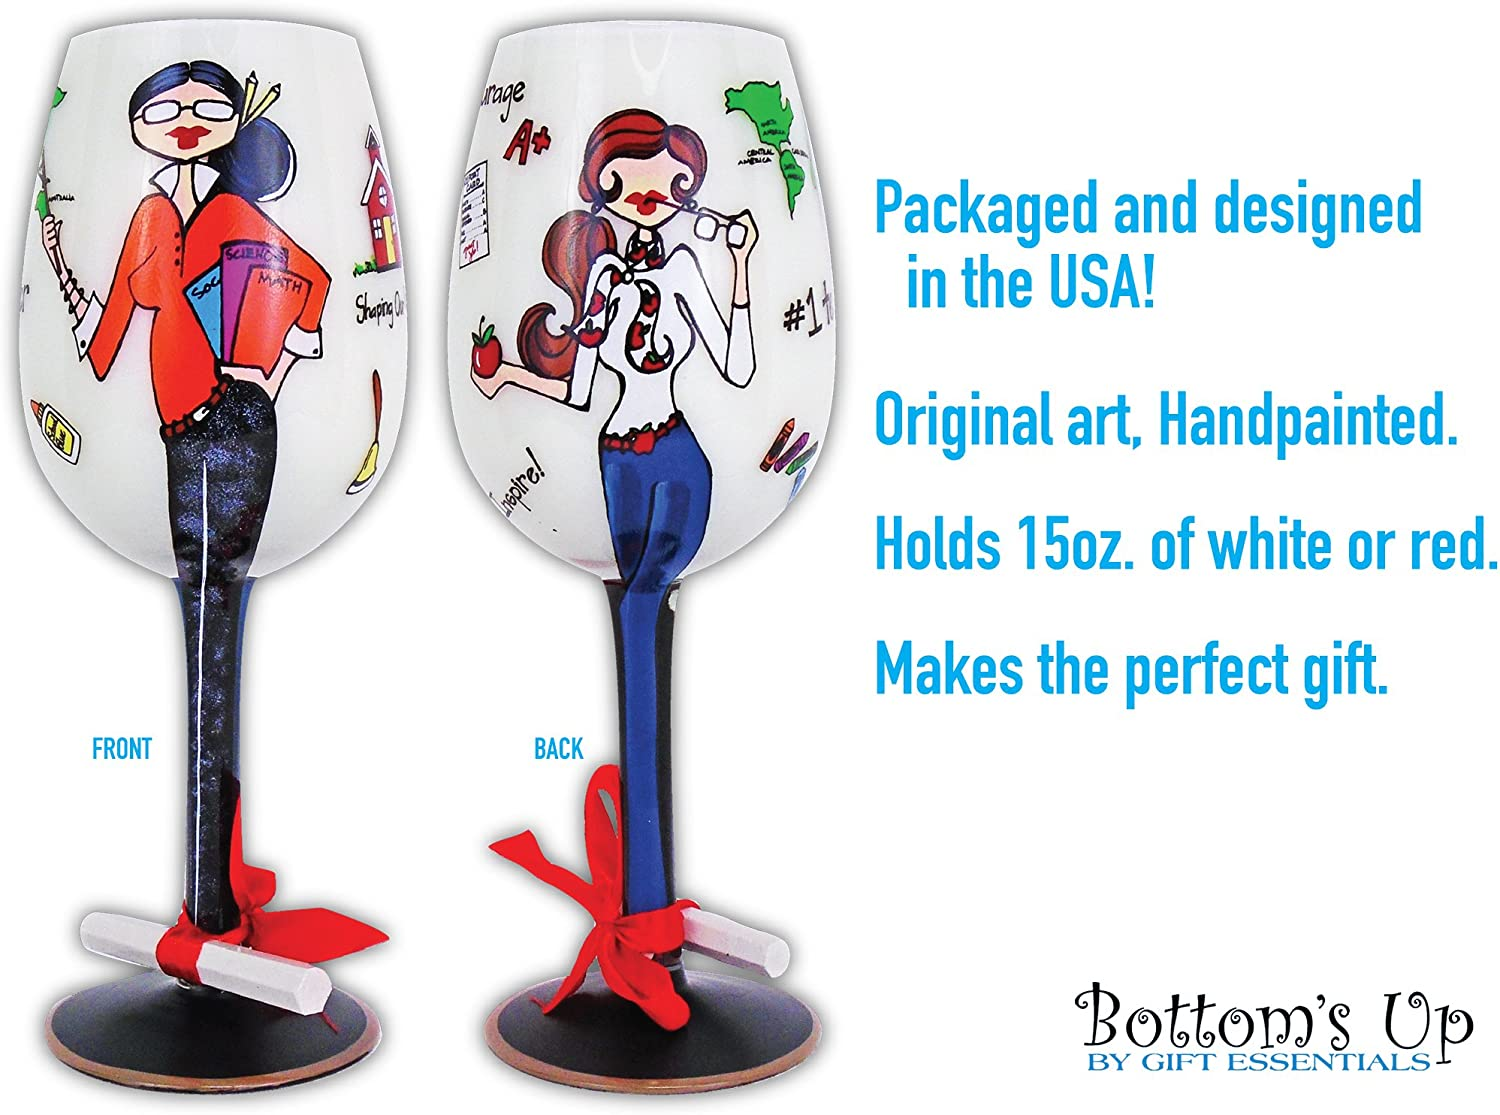 Teachers Professors Wine Glass Shaping Our Future 15oz for Red or White Wine Bottom/'s Up Handpainted Wine Glass